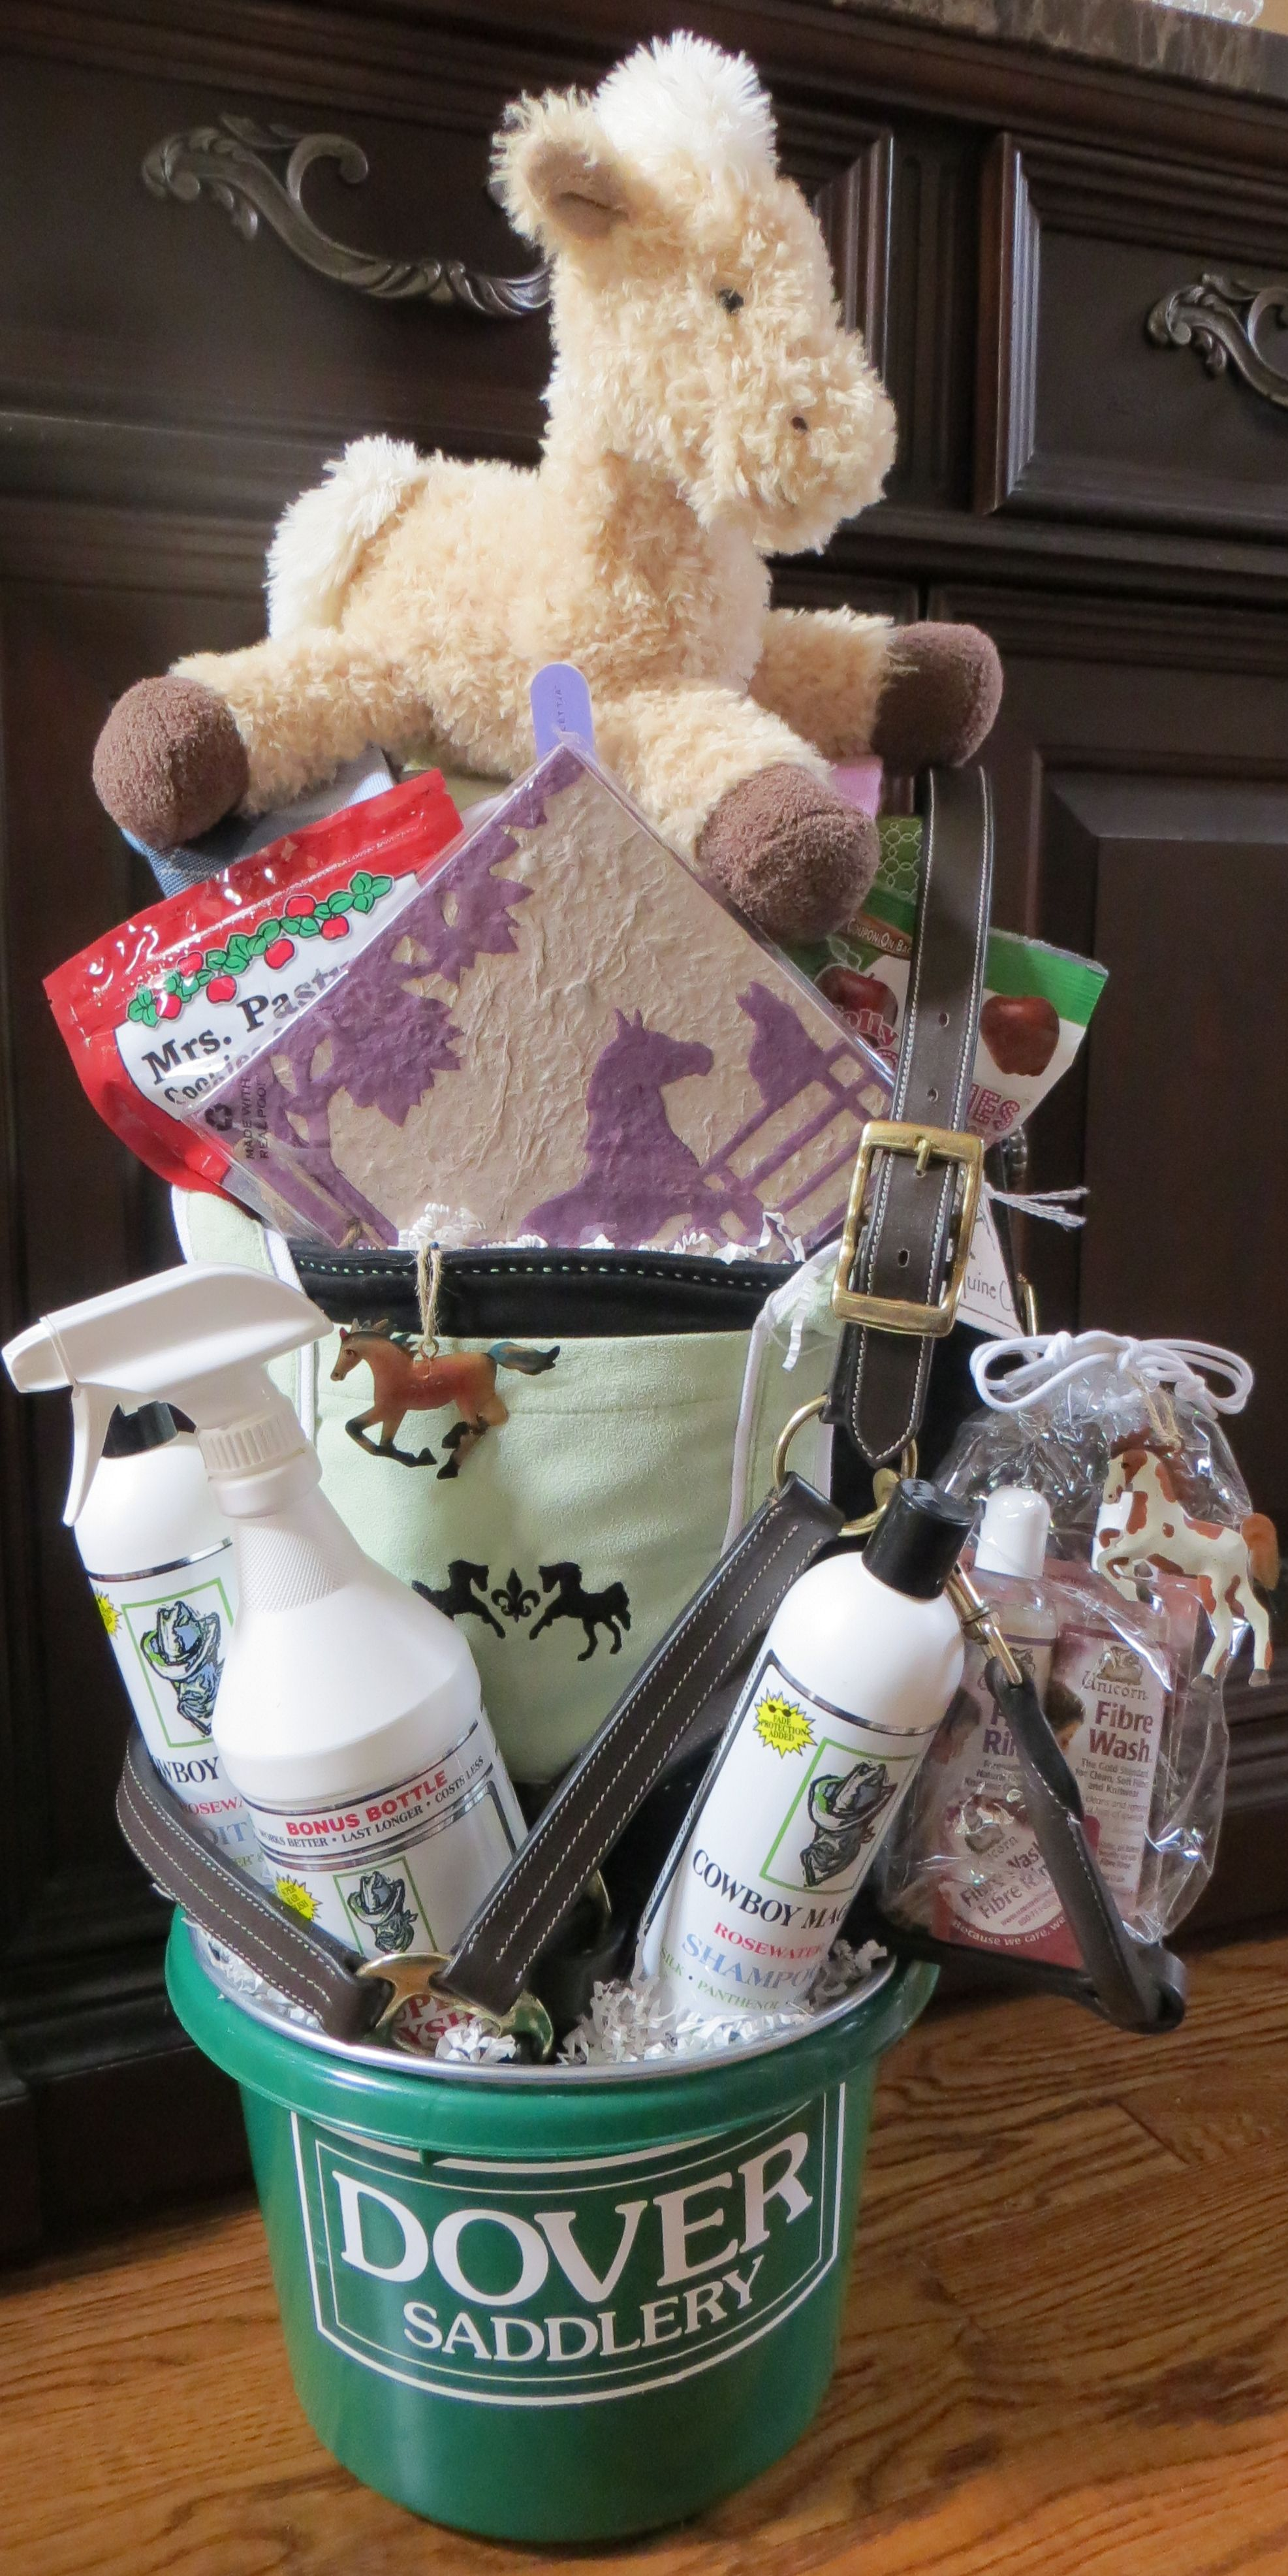 Desktop diy wedding gift basket of high resolution horse lover complete with grooming supplies equipment